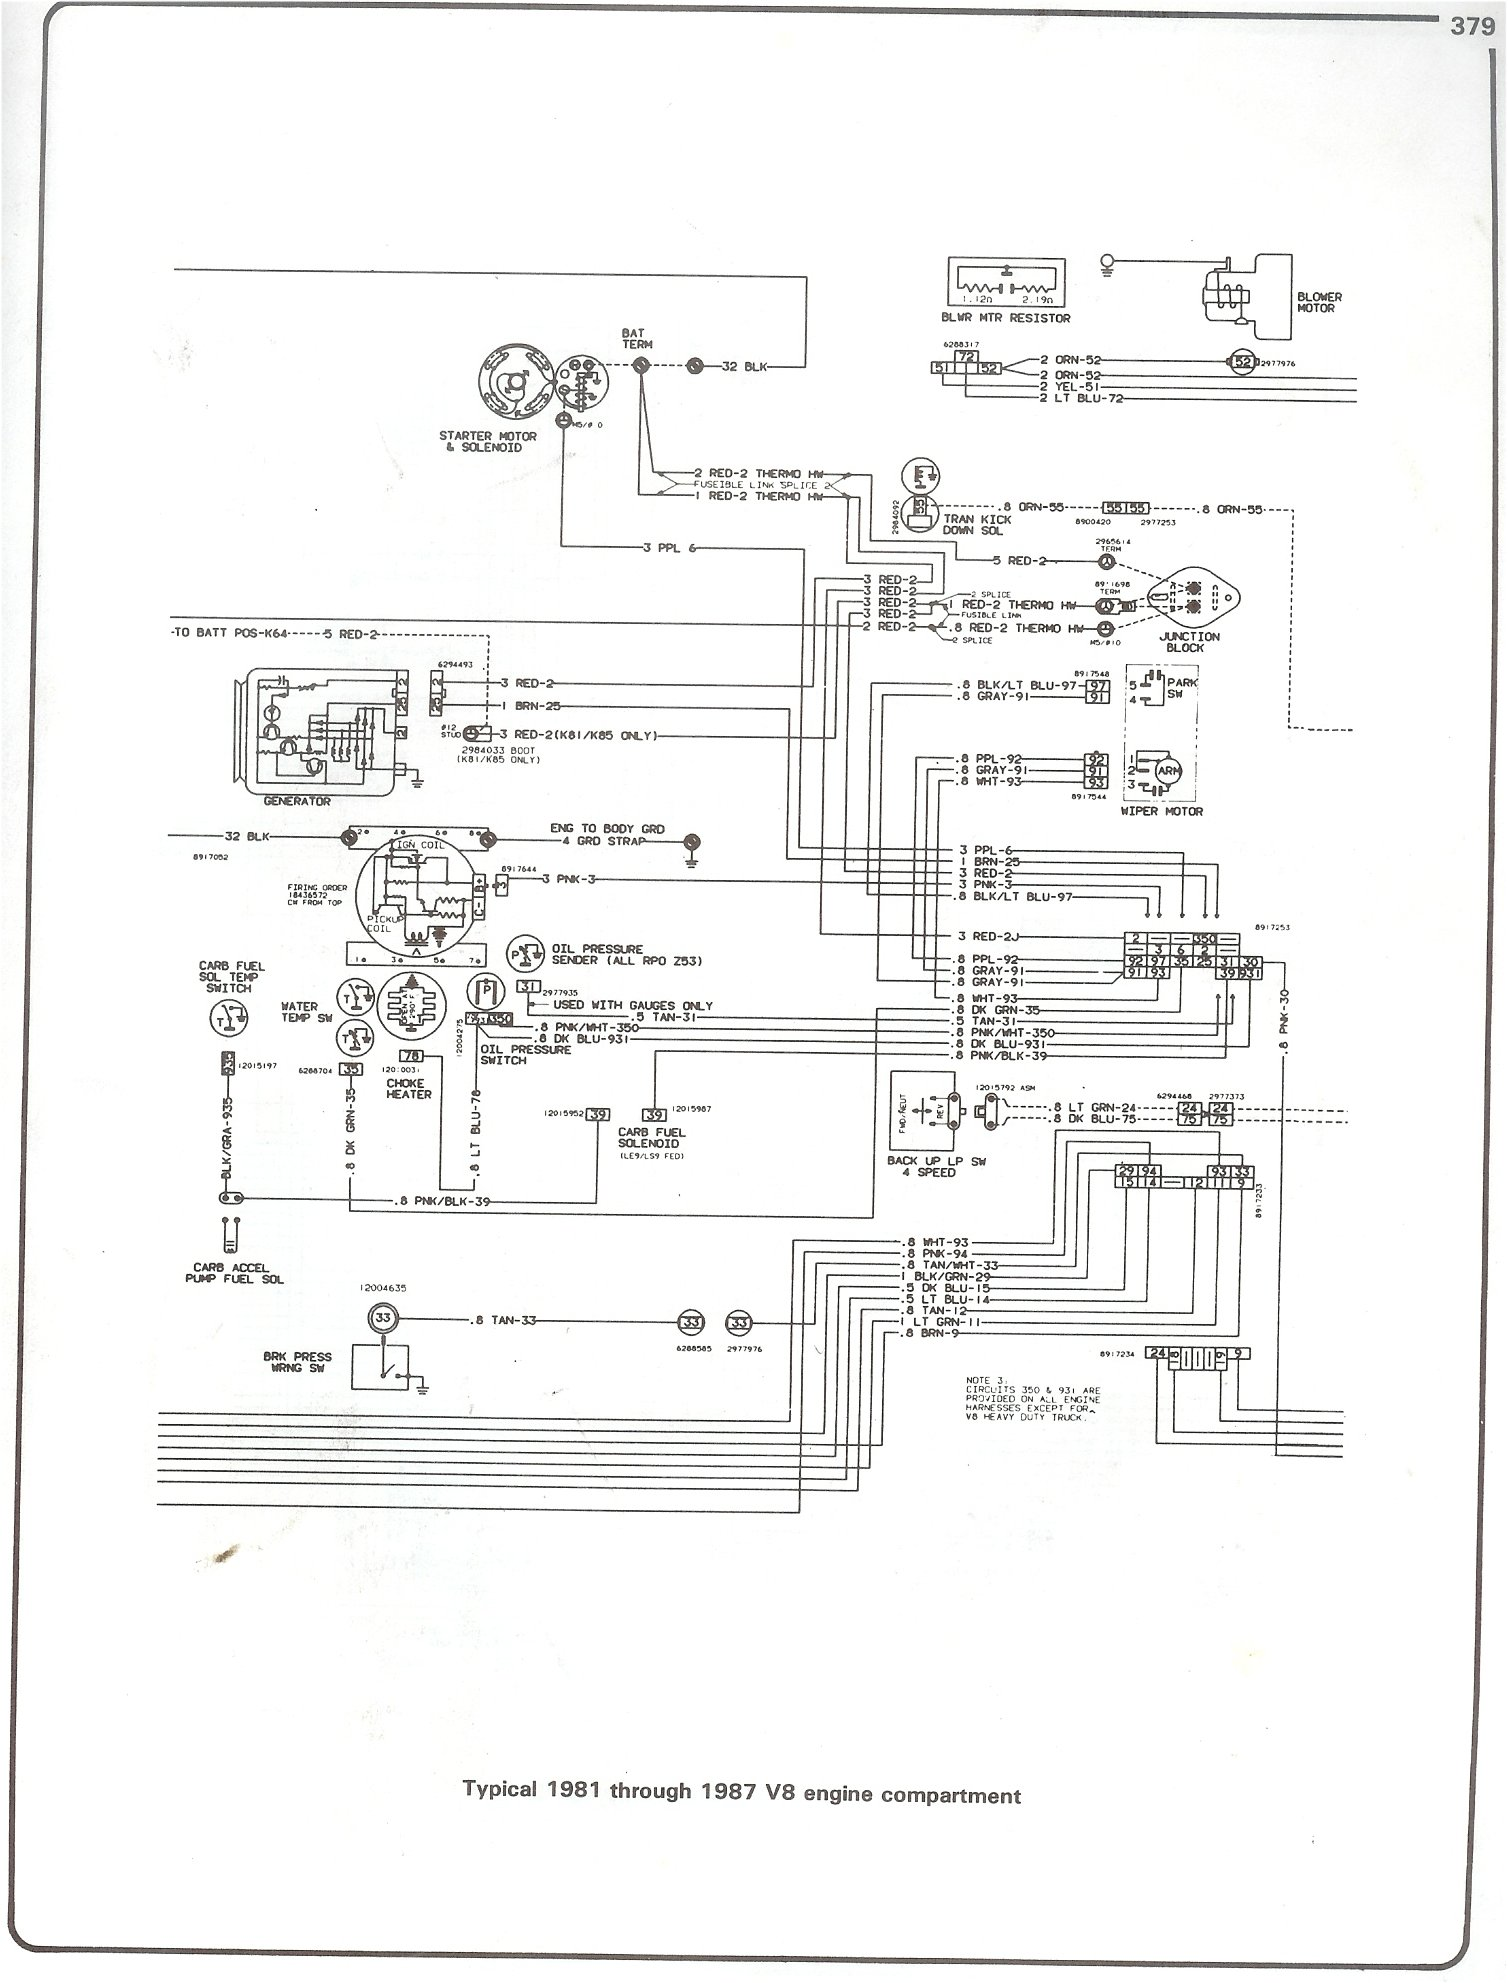 C30 Truck Wiring Diagram For 85 Archive Of Automotive 1974 Datsun 620 Chevy C10 Just Data Rh Ag Skiphire Co Uk